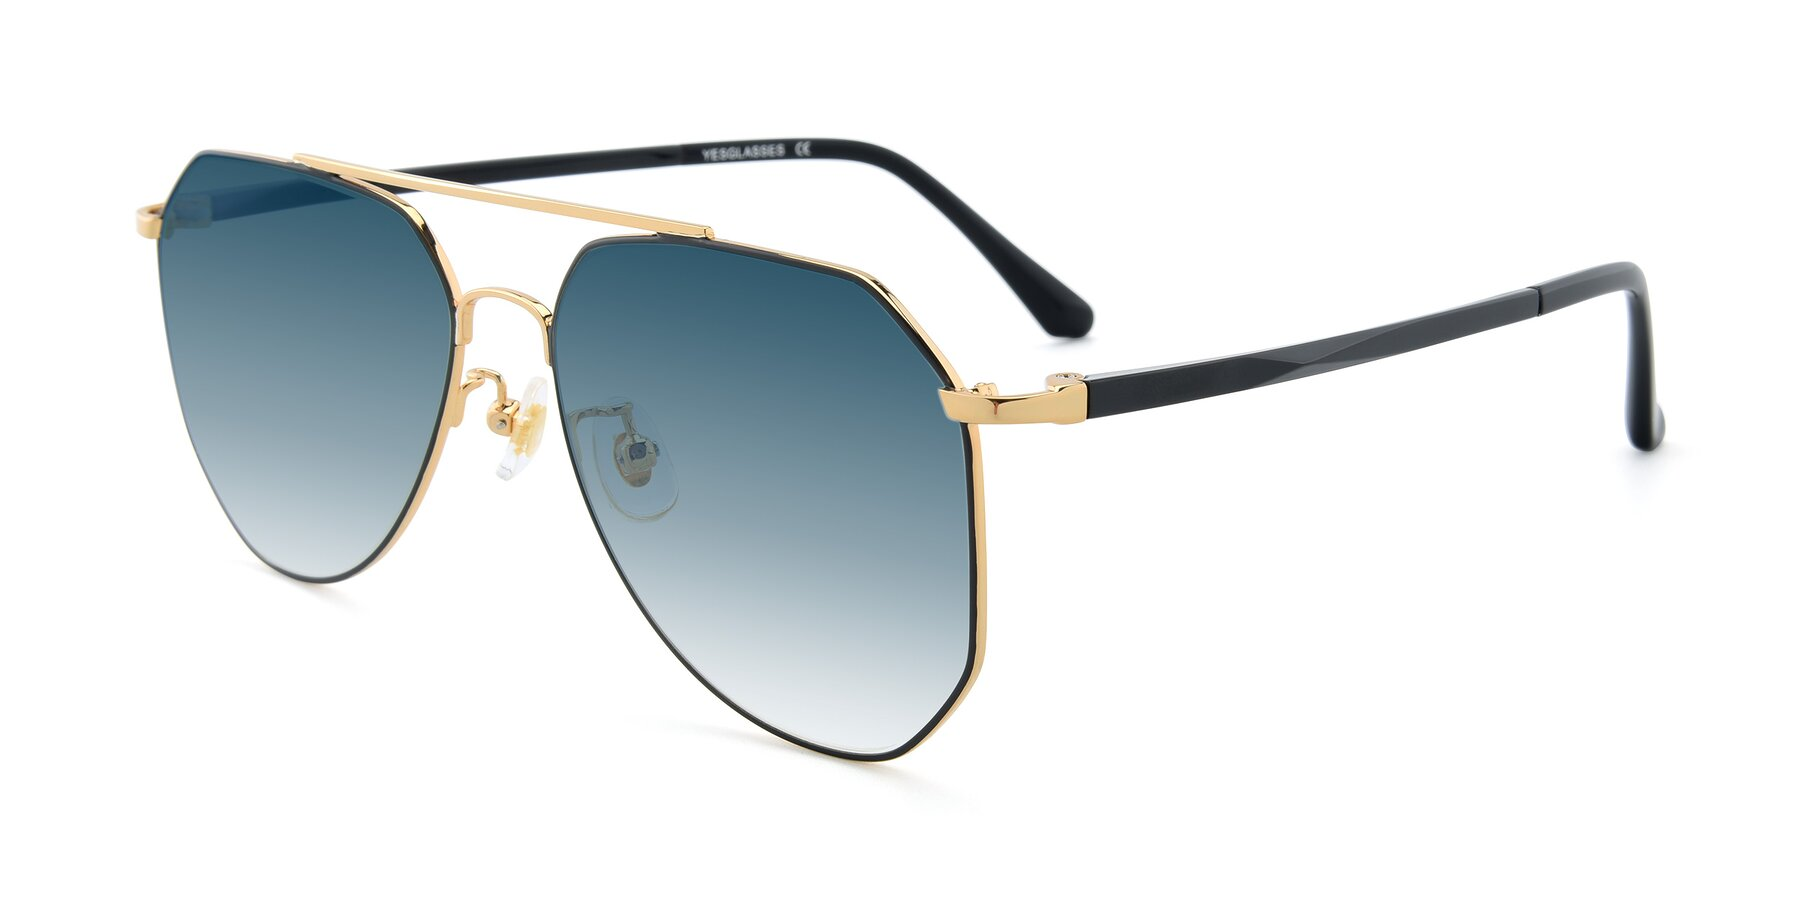 Angle of XC-8040 in Black/ Gold with Blue Gradient Lenses